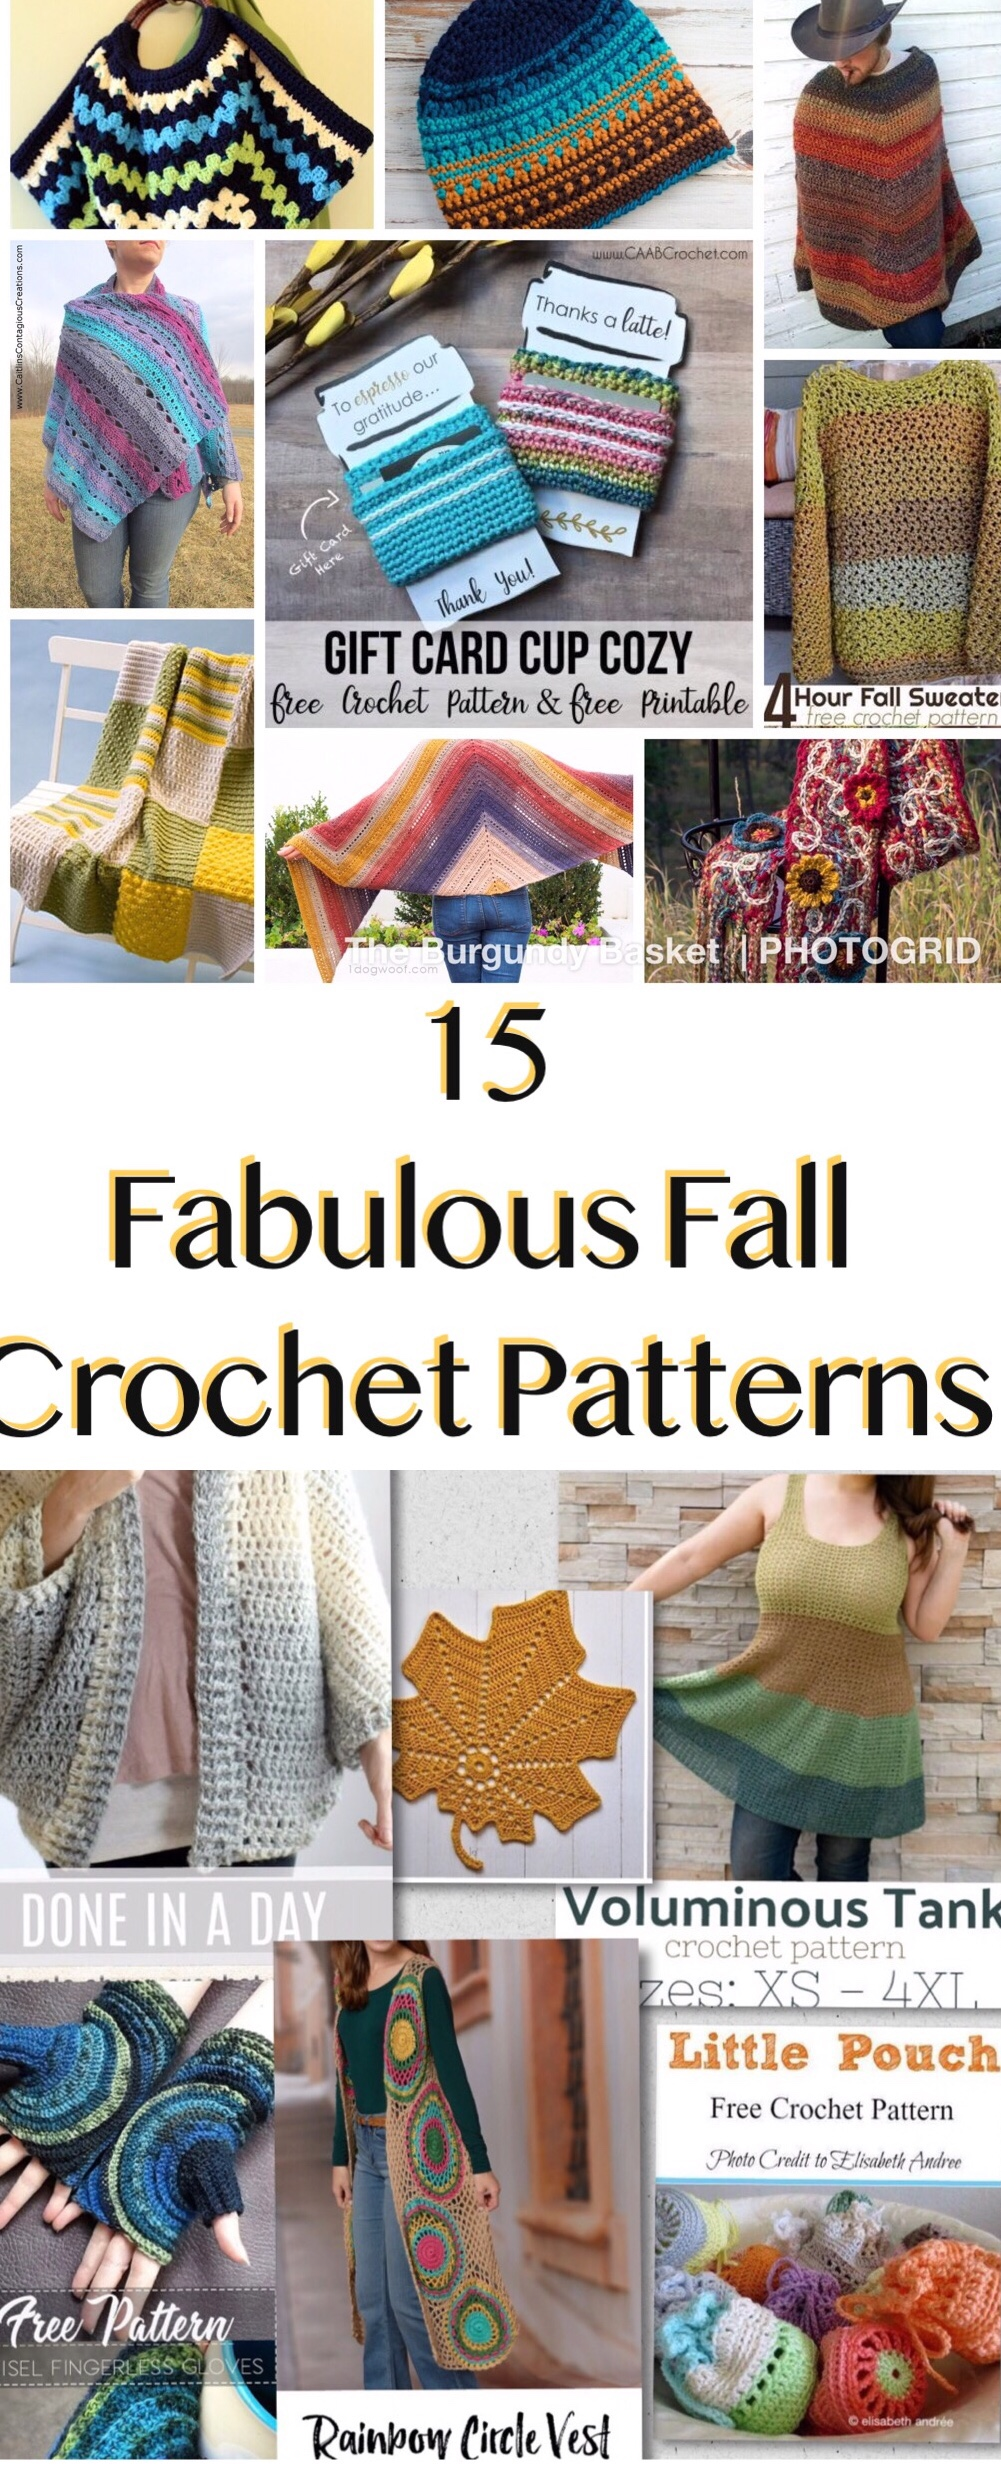 graphic about Free Printable Crochet Patterns identify 15 Fantastic Drop Crochet Roundup Practices The